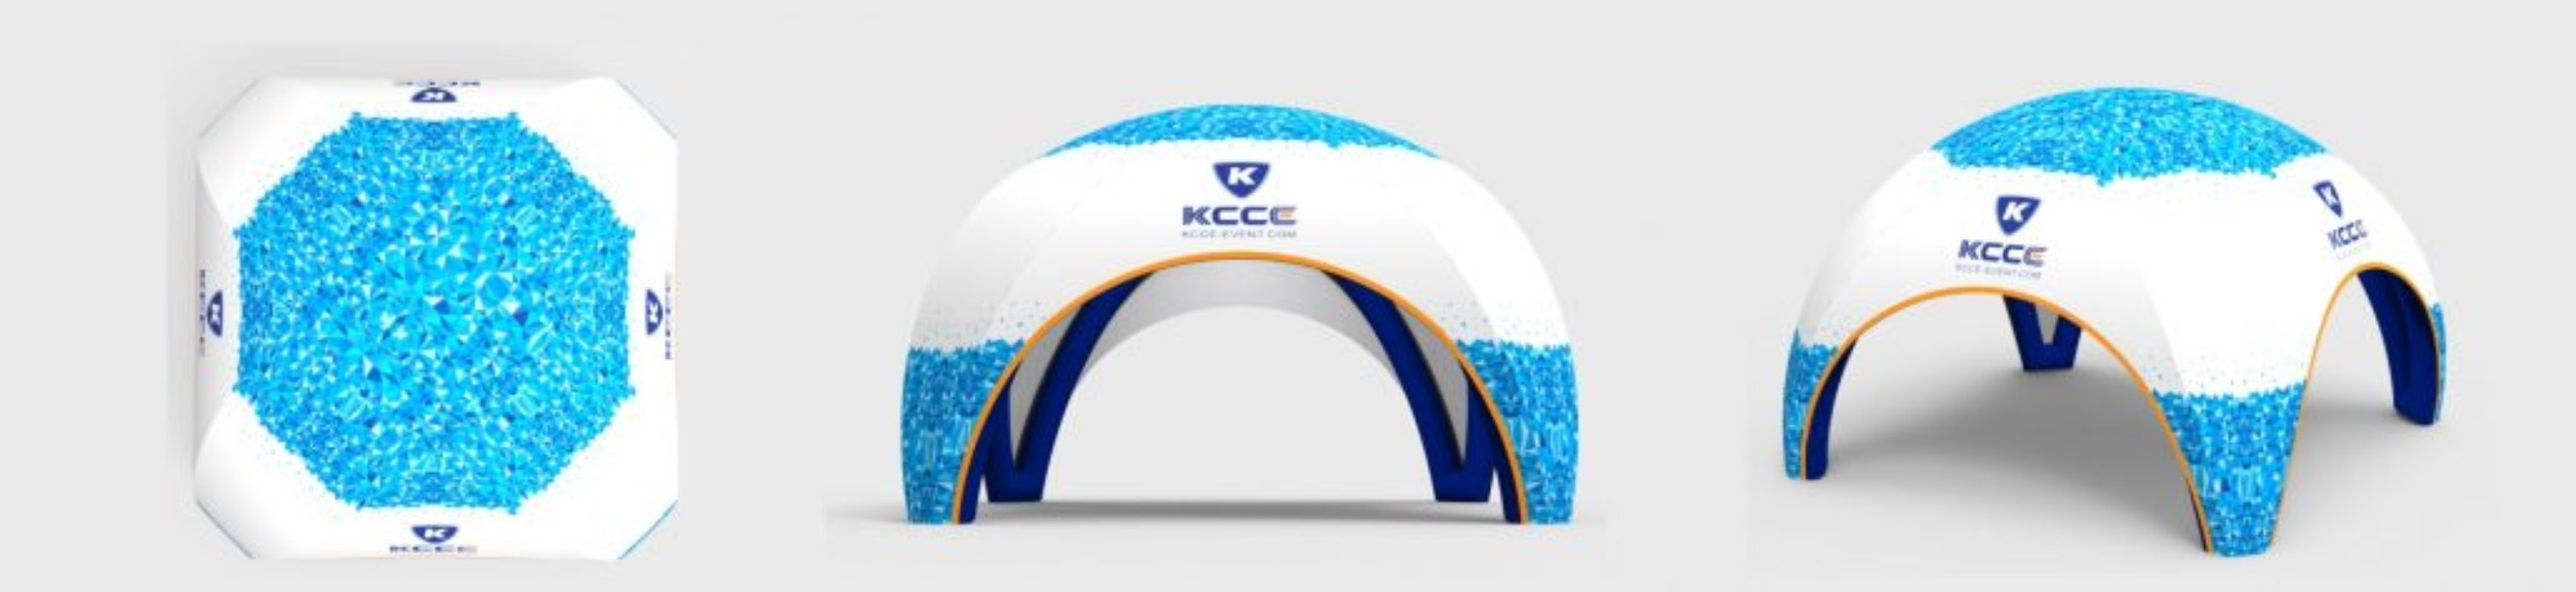 large size tent